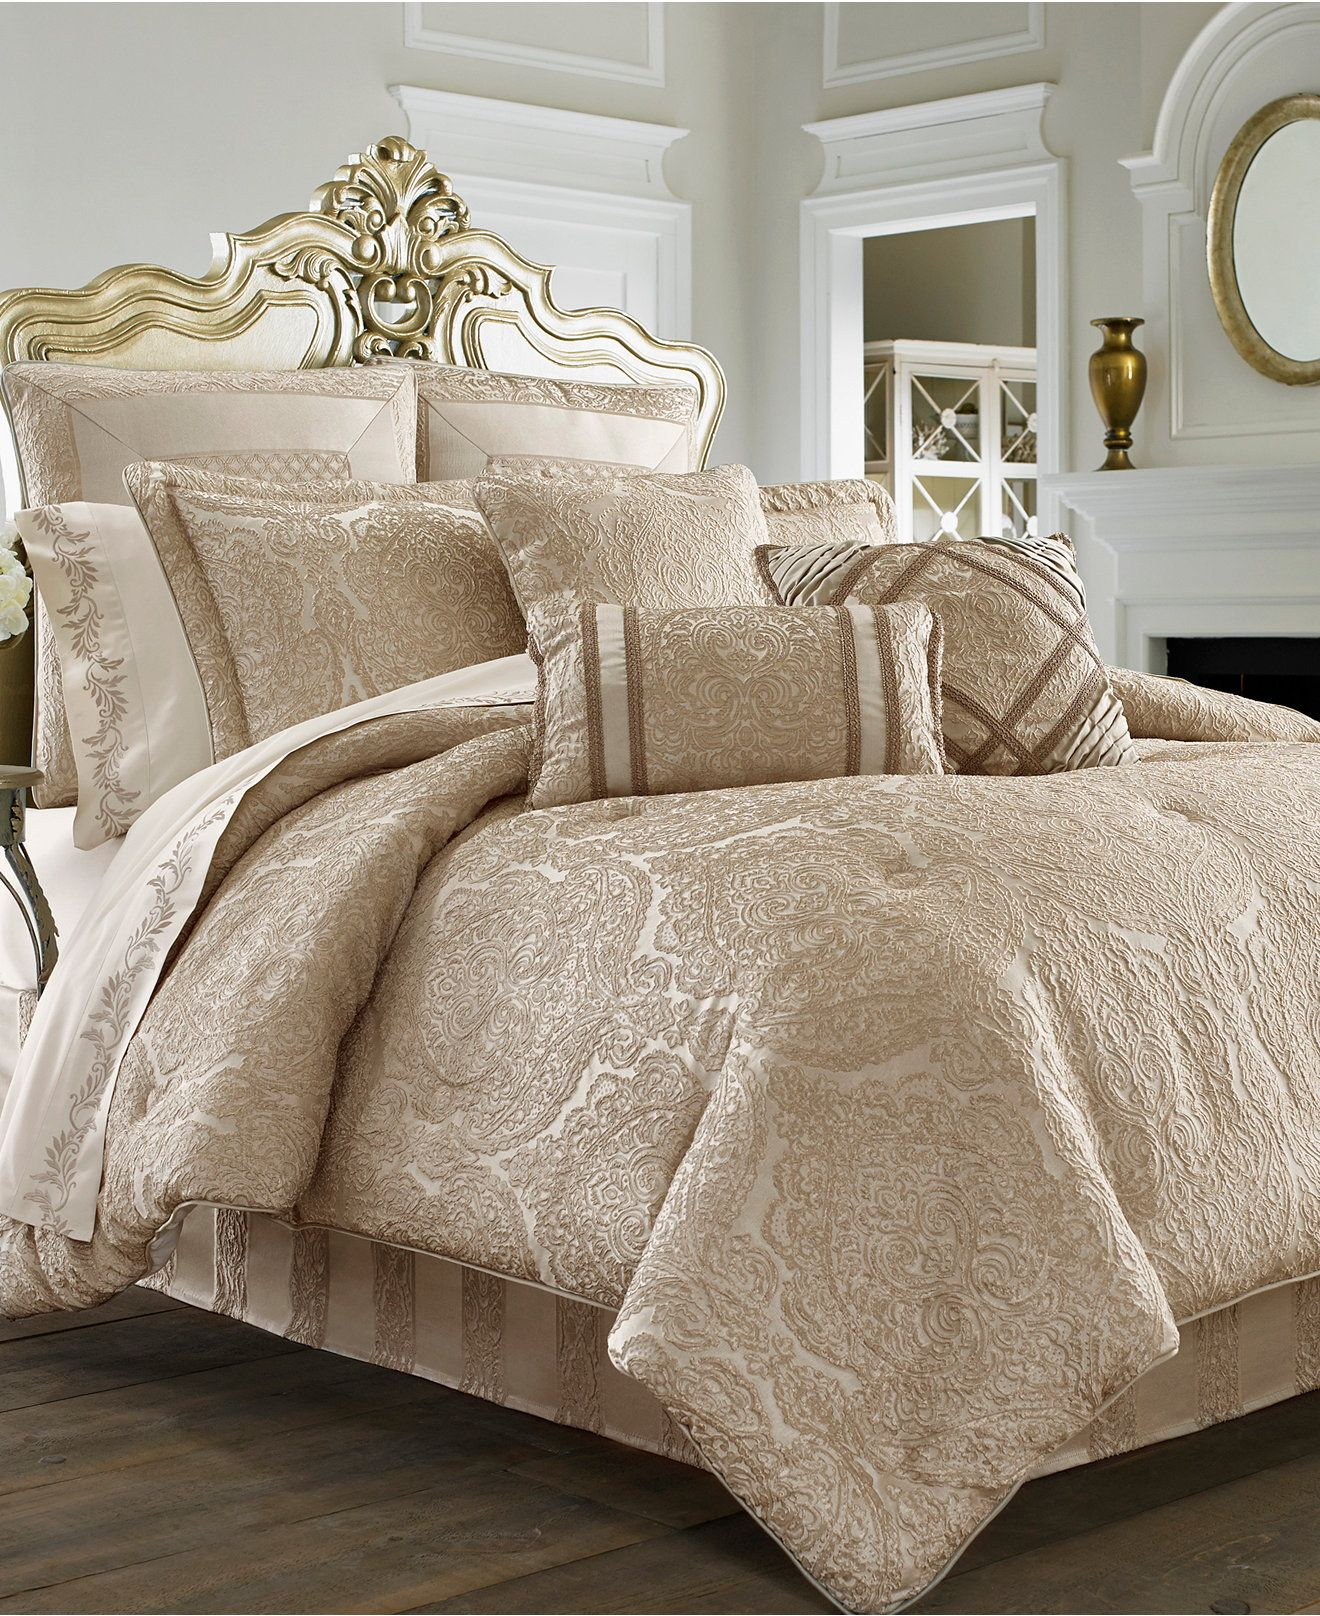 J Queen New York Renaissance Comforter Sets Bedding Collections